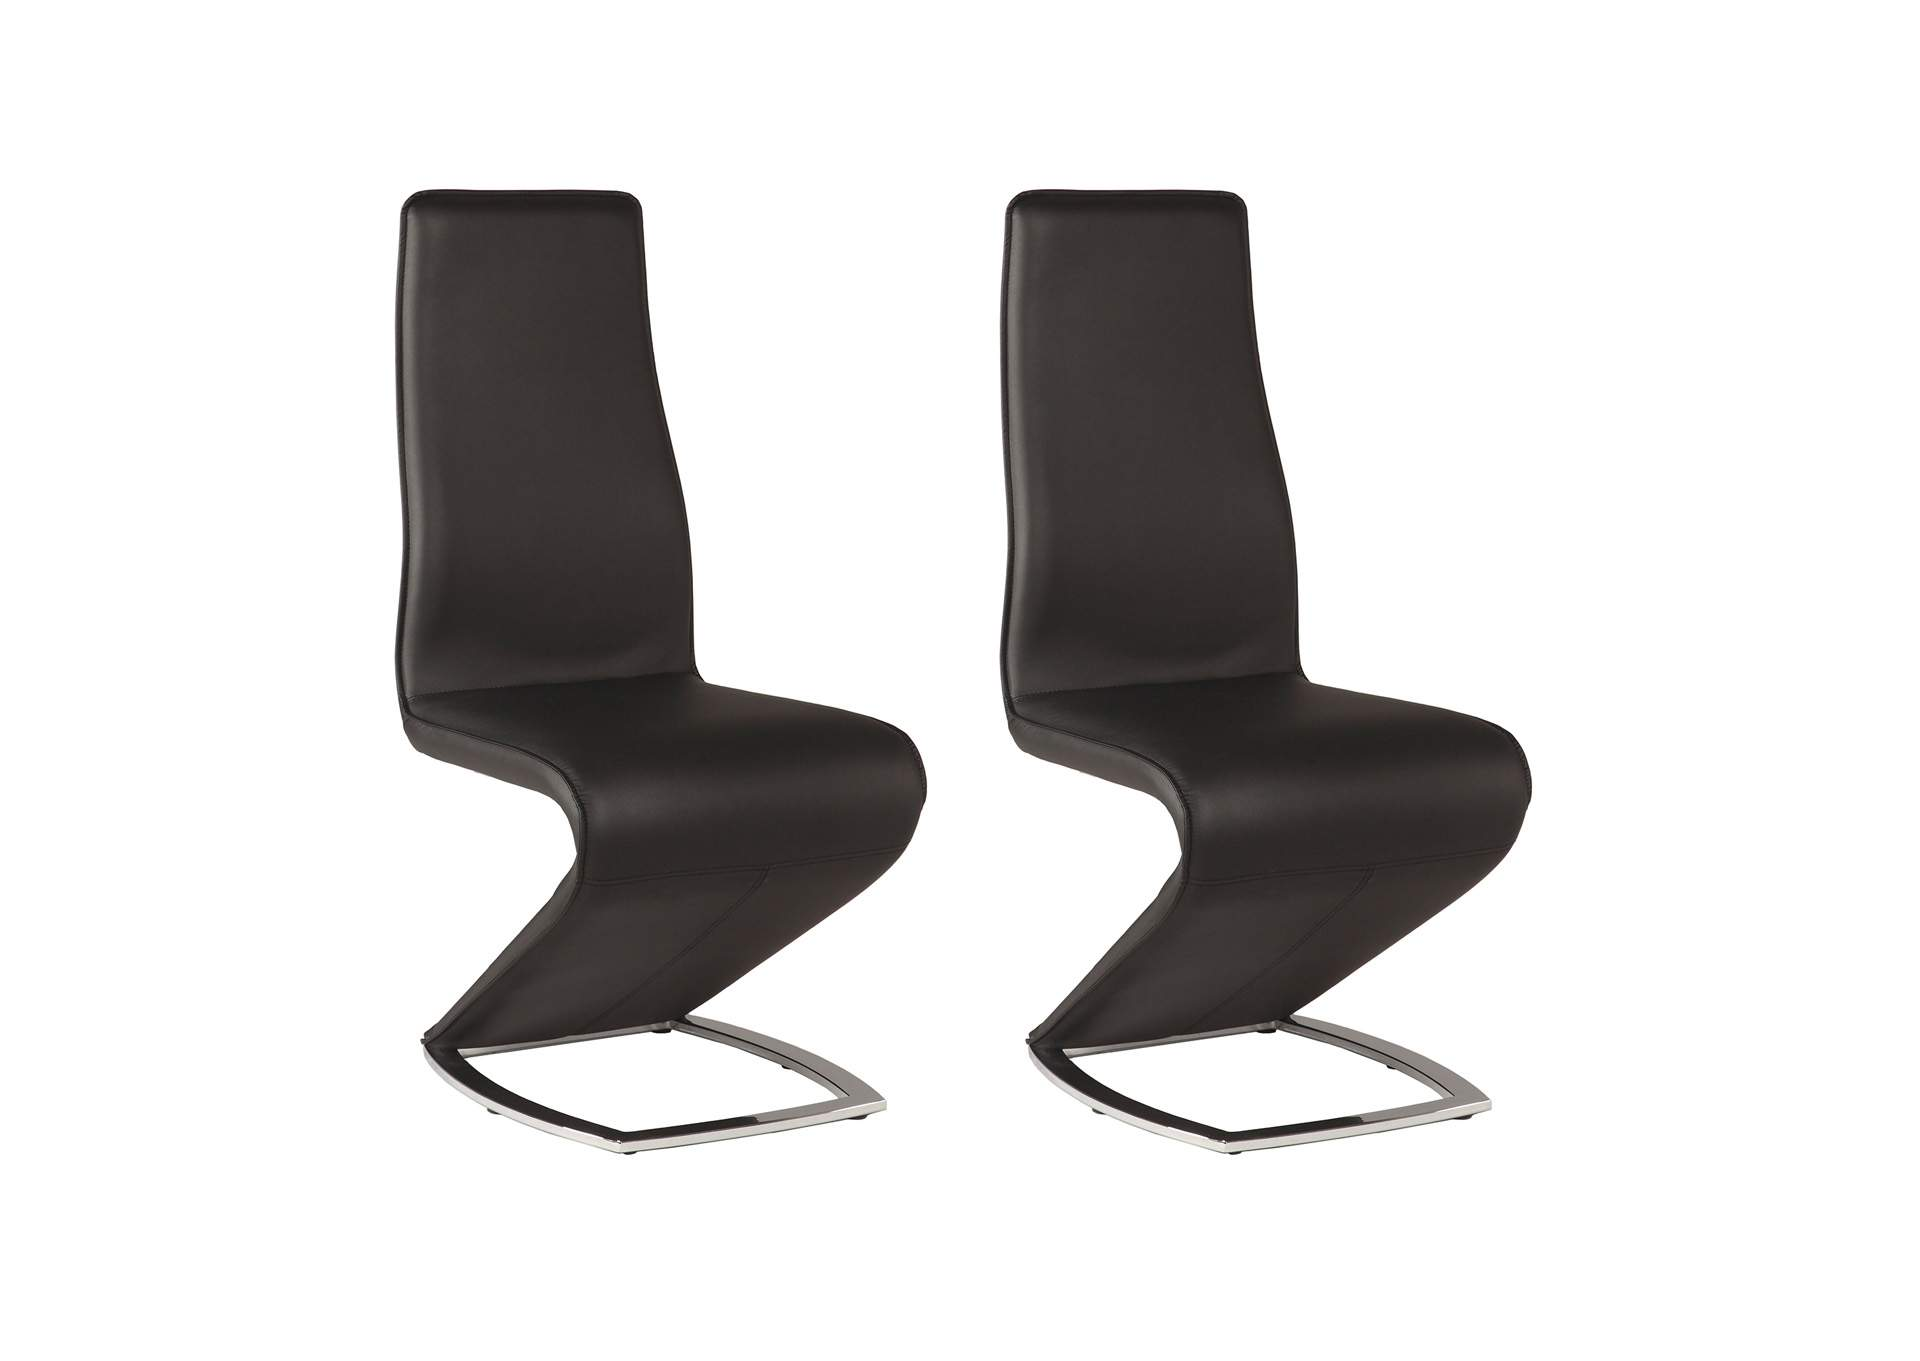 Tara Black Z-Shaped Side Chair (Set of 2),Chintaly Imports